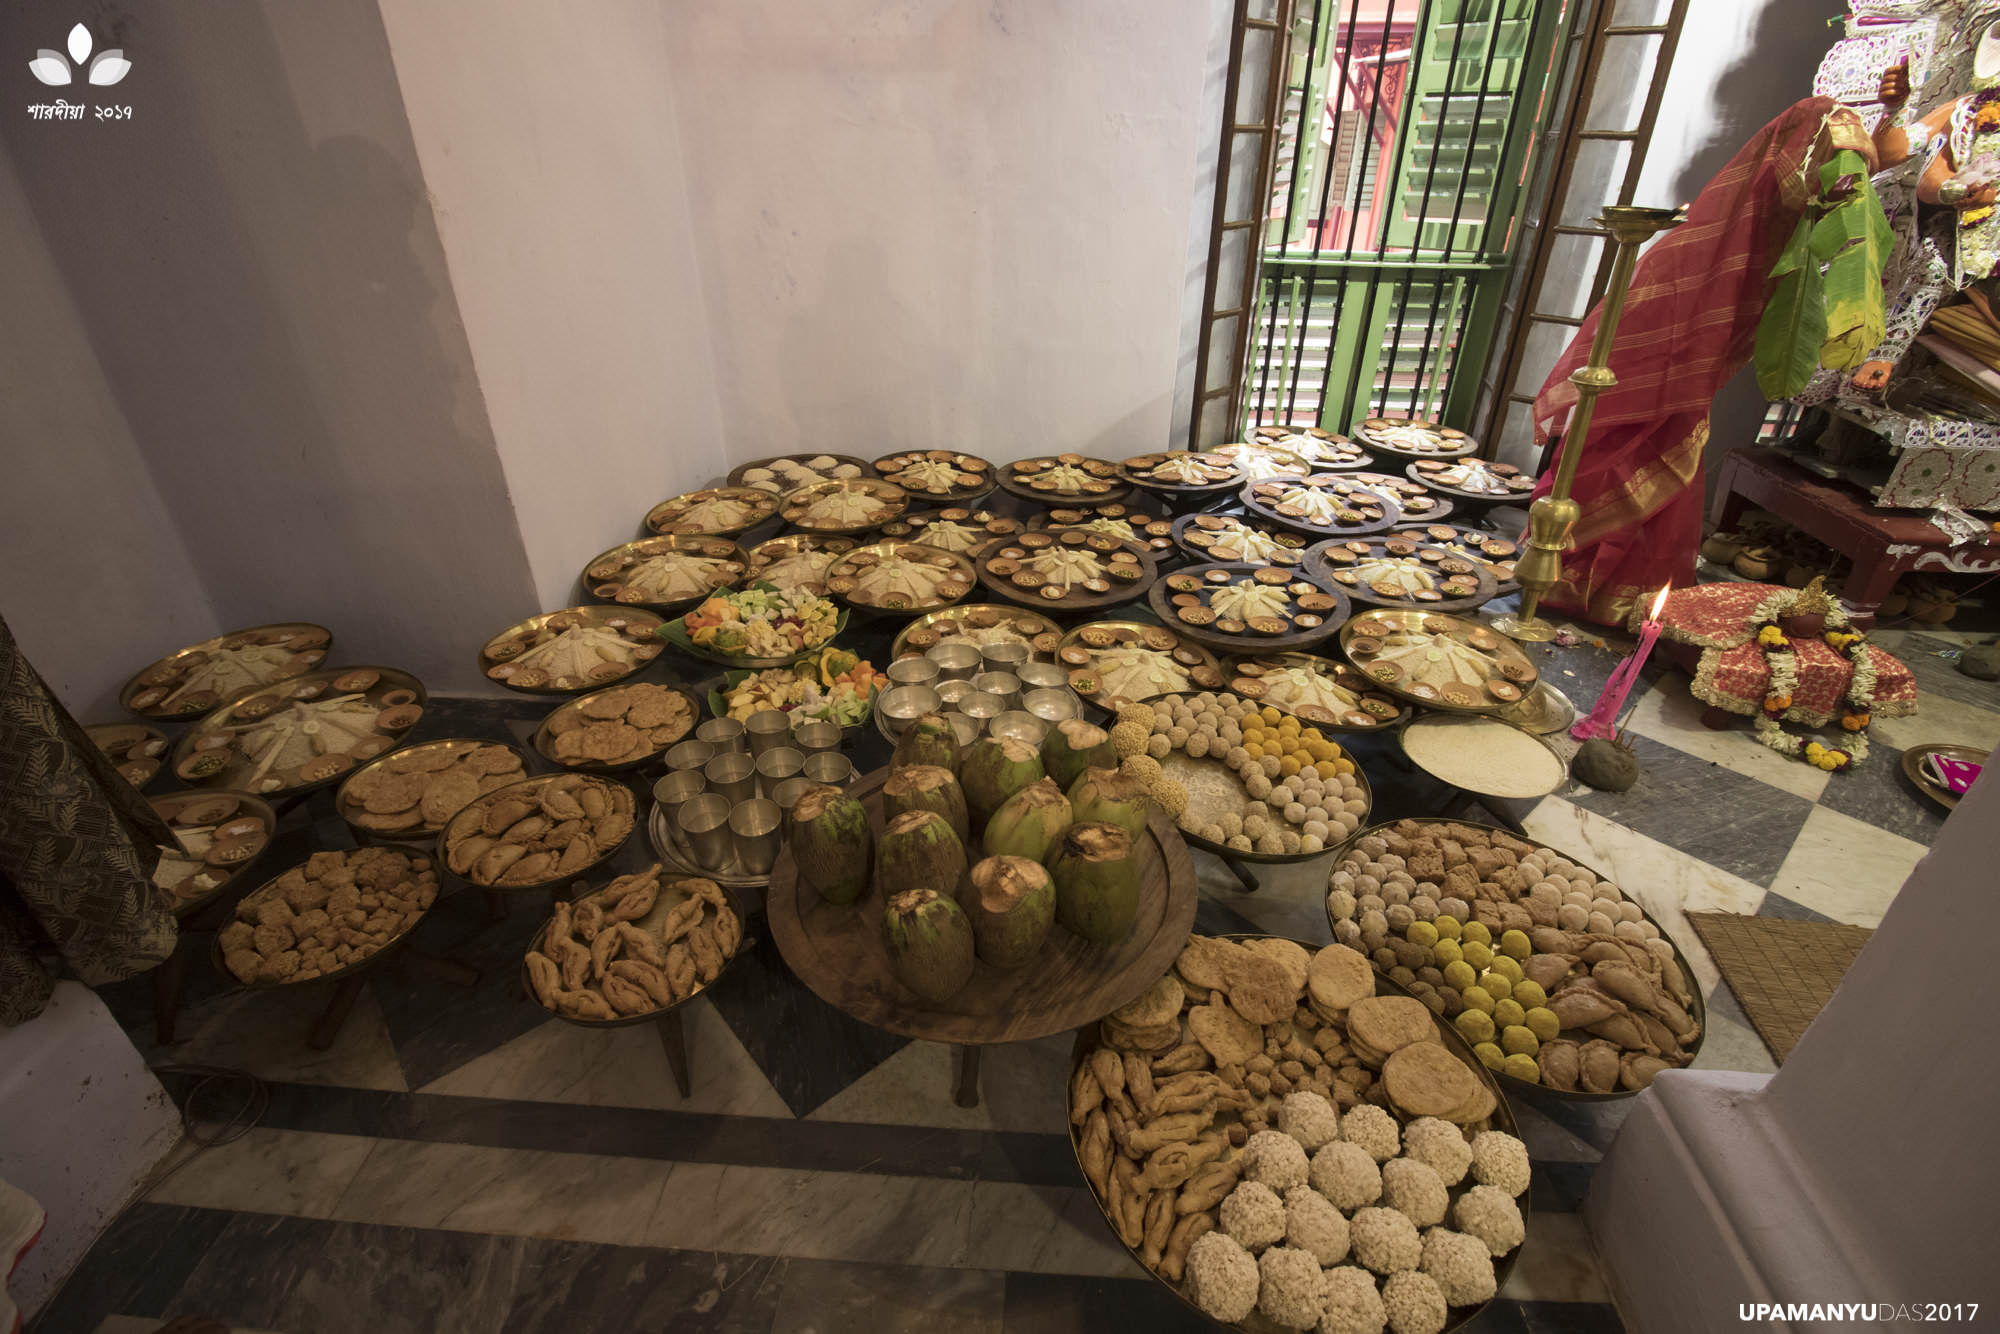 Laha Family's Puja, The Food for Offering